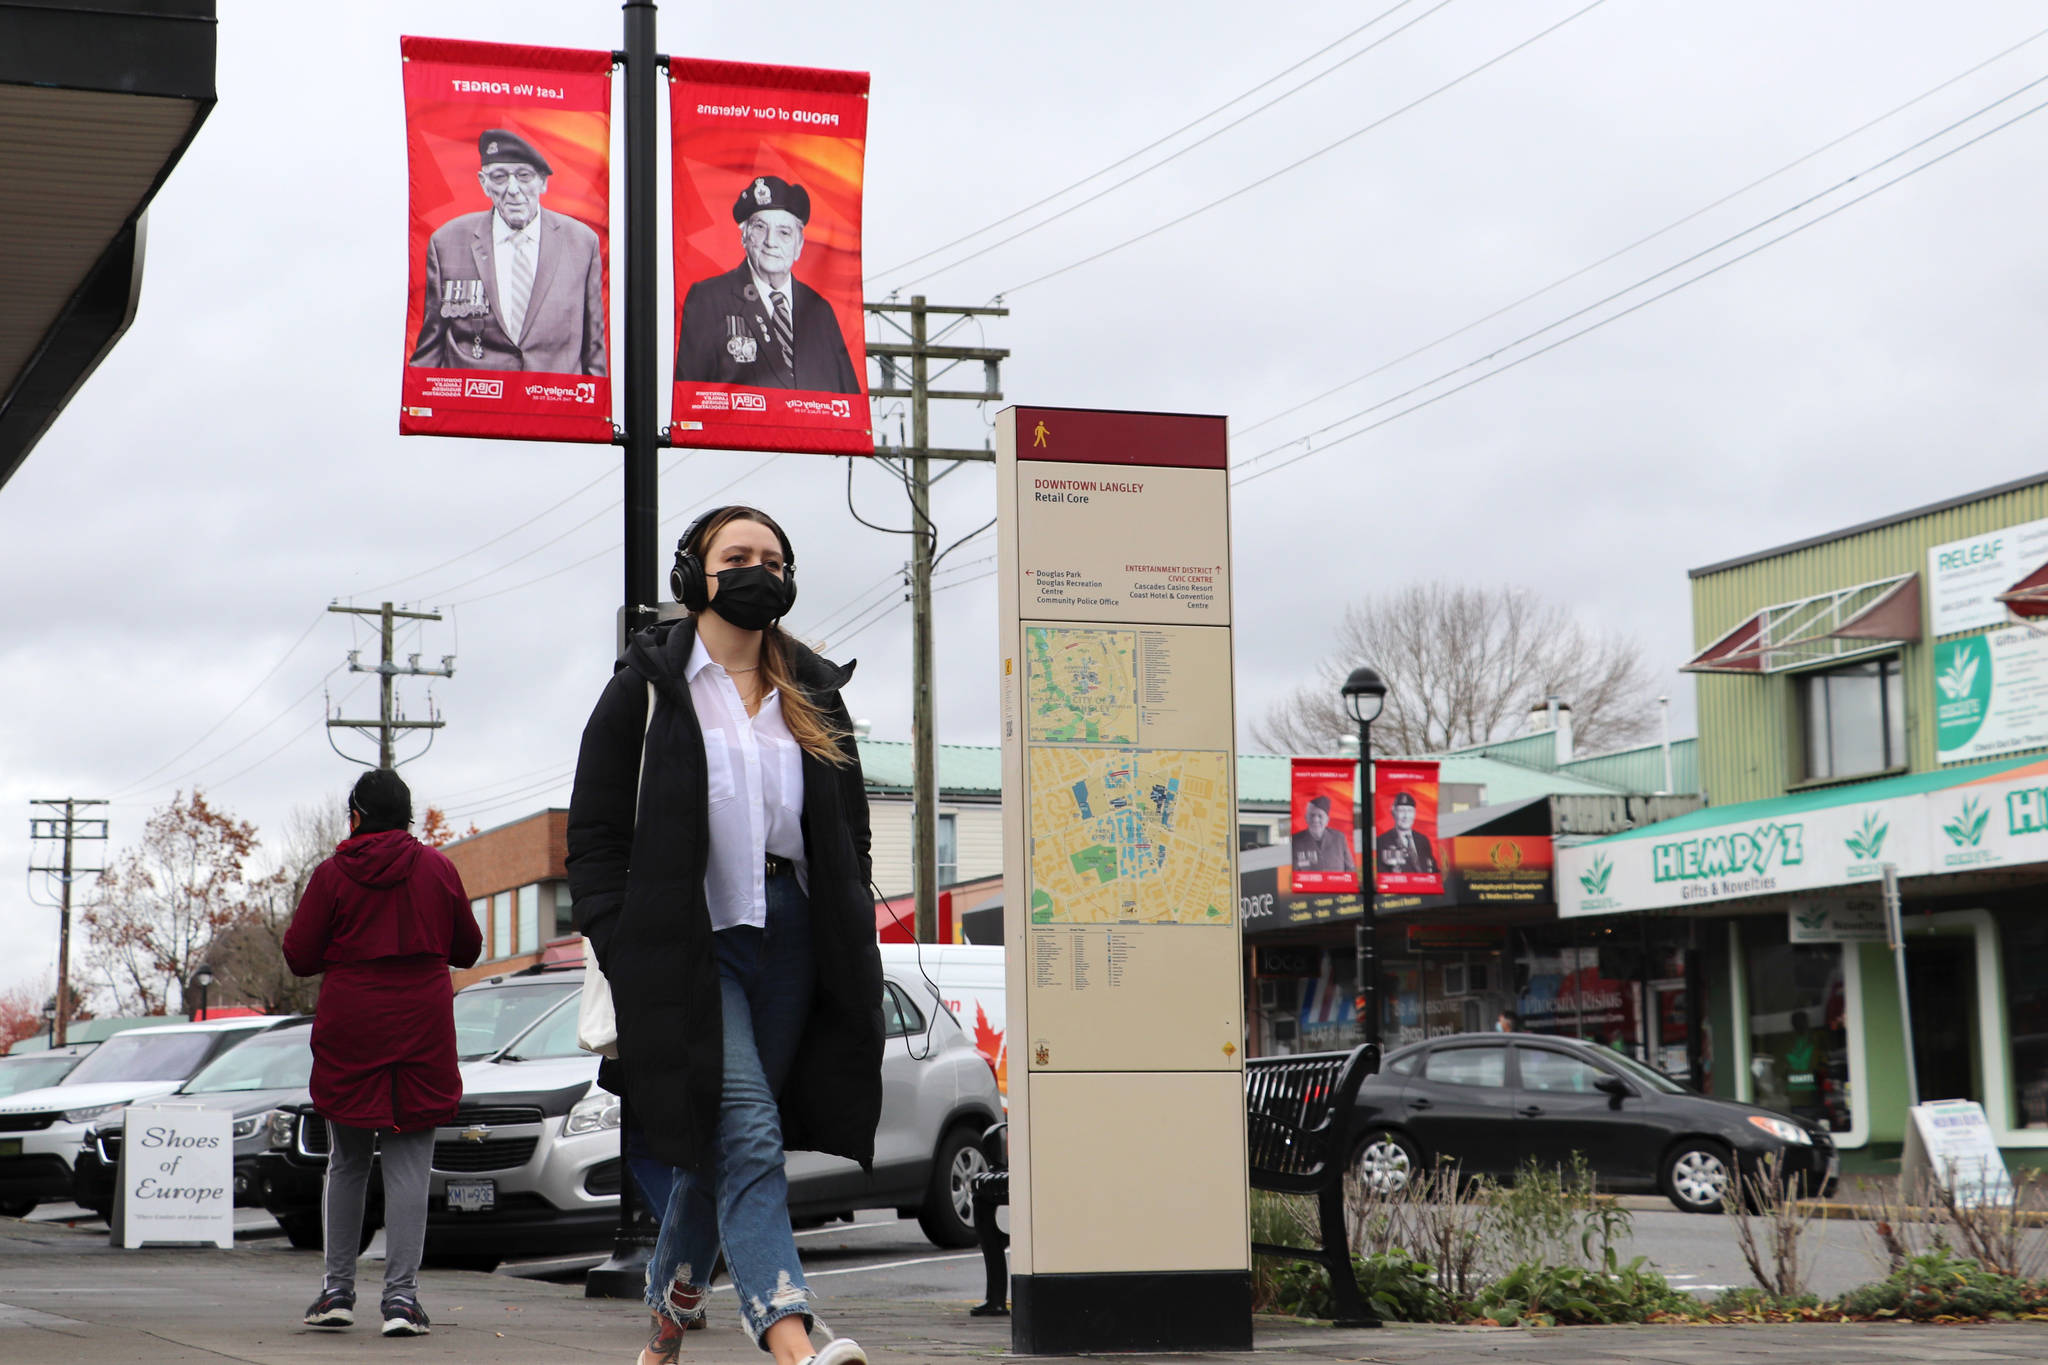 The Downtown Langley Business Association honours veterans by displaying images of those who served ahead of Remembrance Day each year. (Joti Grewal/Langley Advance Times)